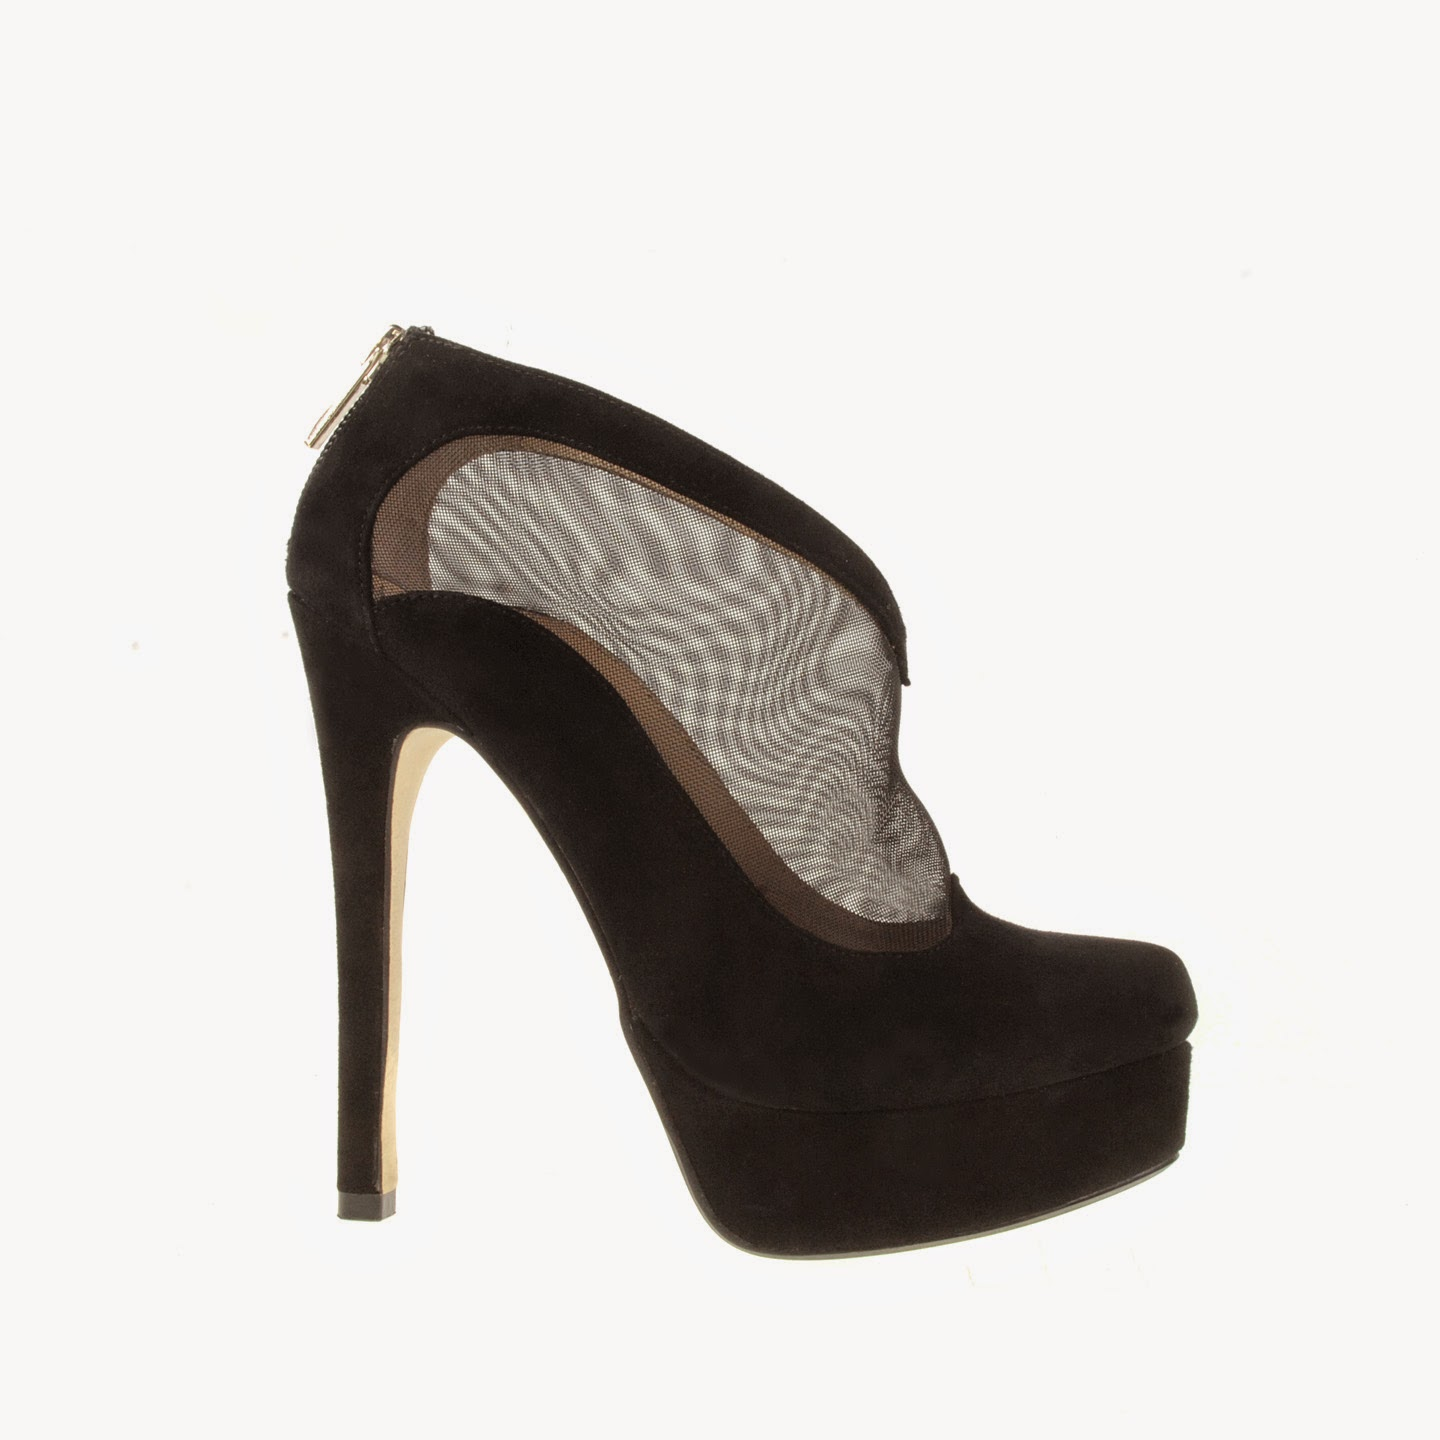 0628d4af7ea This shoe is called Letizia and is on sale for  99.99 at Chinese Laundry.  It comes in black